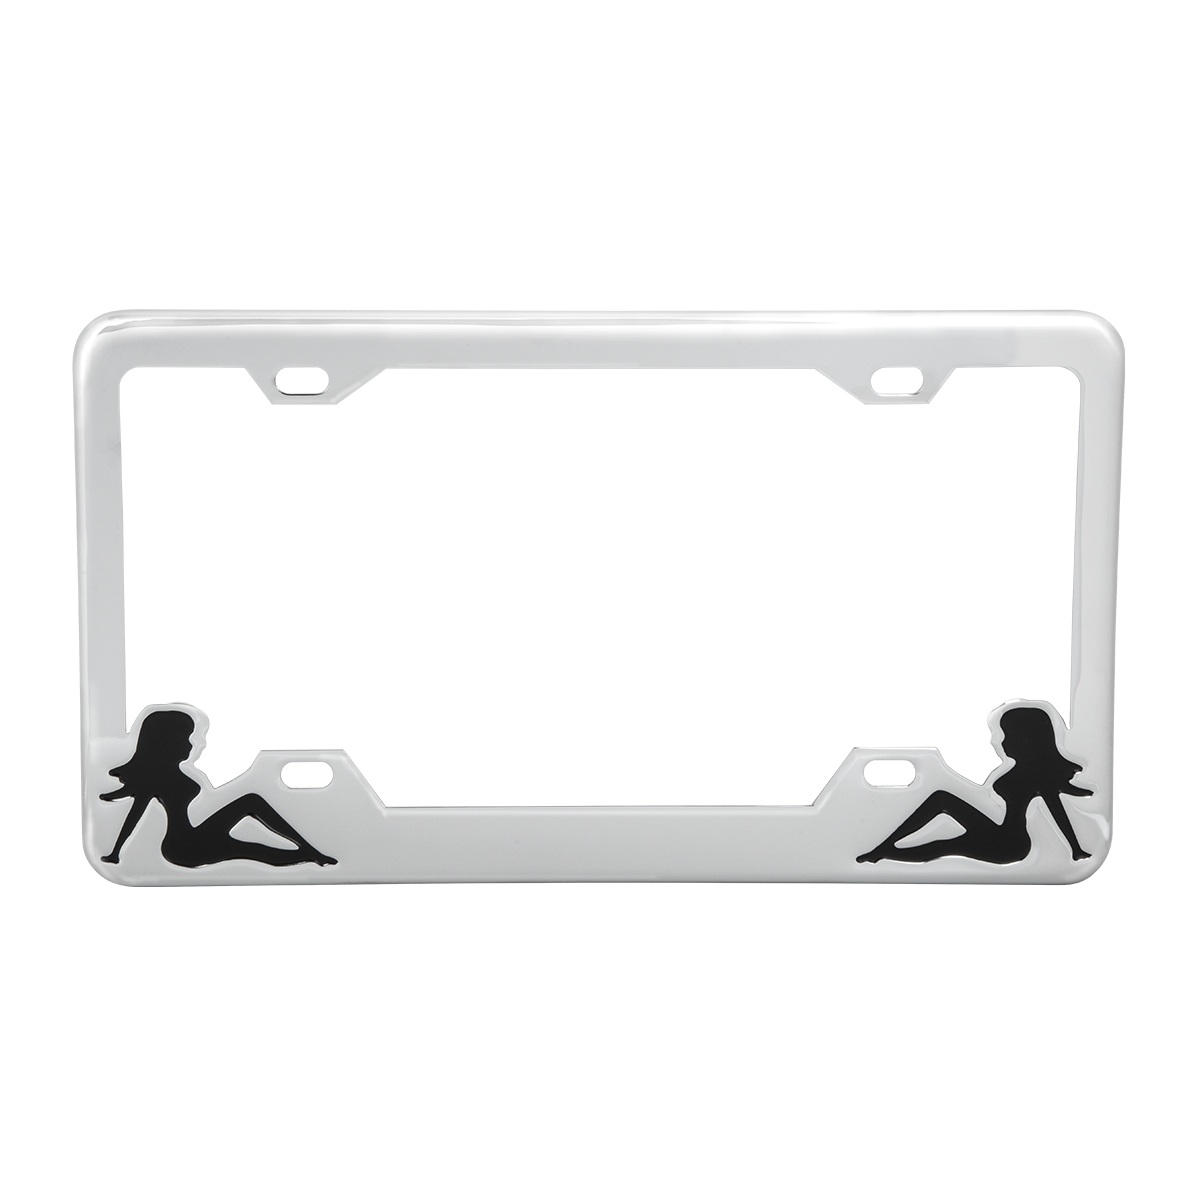 Chrome Plated Steel License Plate Frame with Black Color Sitting Ladies